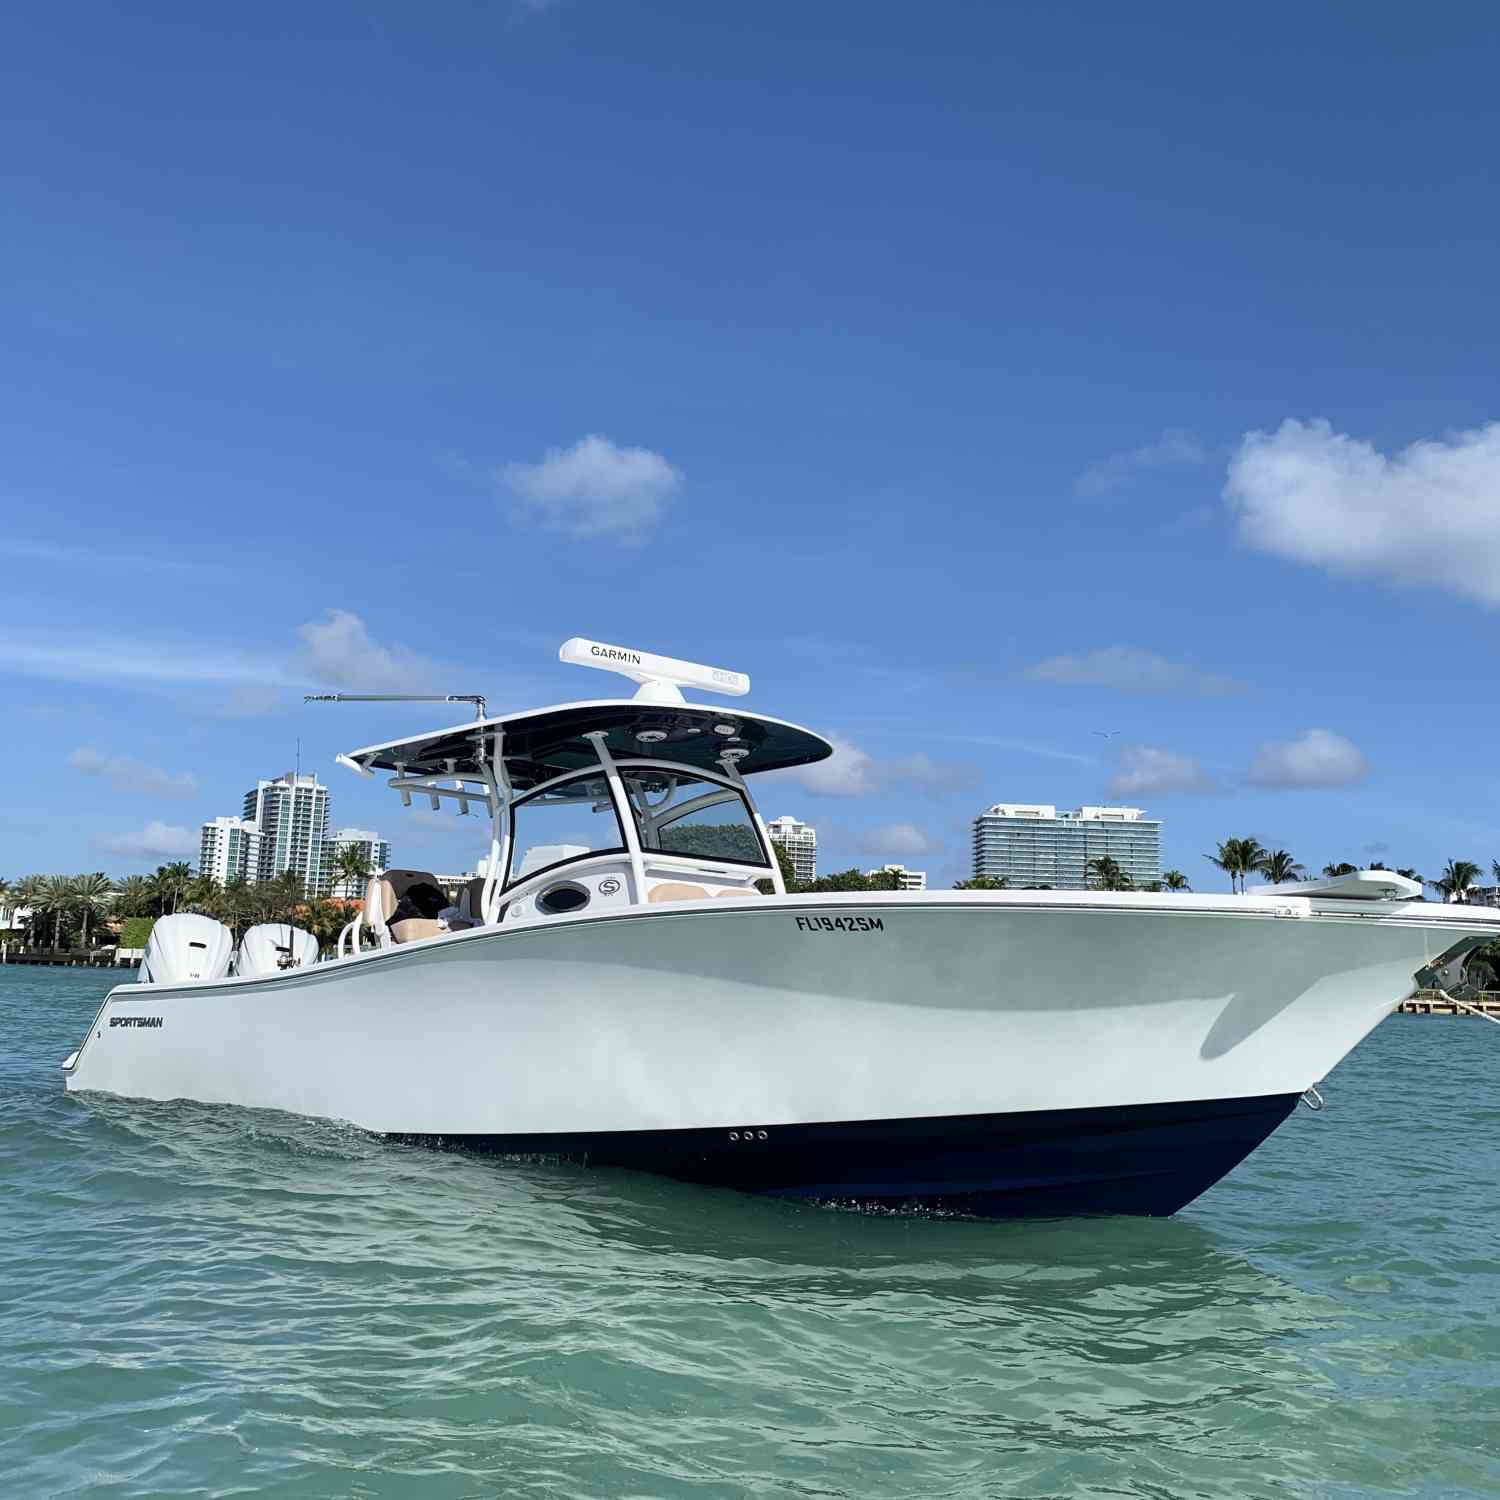 Title: Winky face ? - On board their Sportsman Open 312 Center Console - Location: Miami, FL. Participating in the Photo Contest #SportsmanMay2020